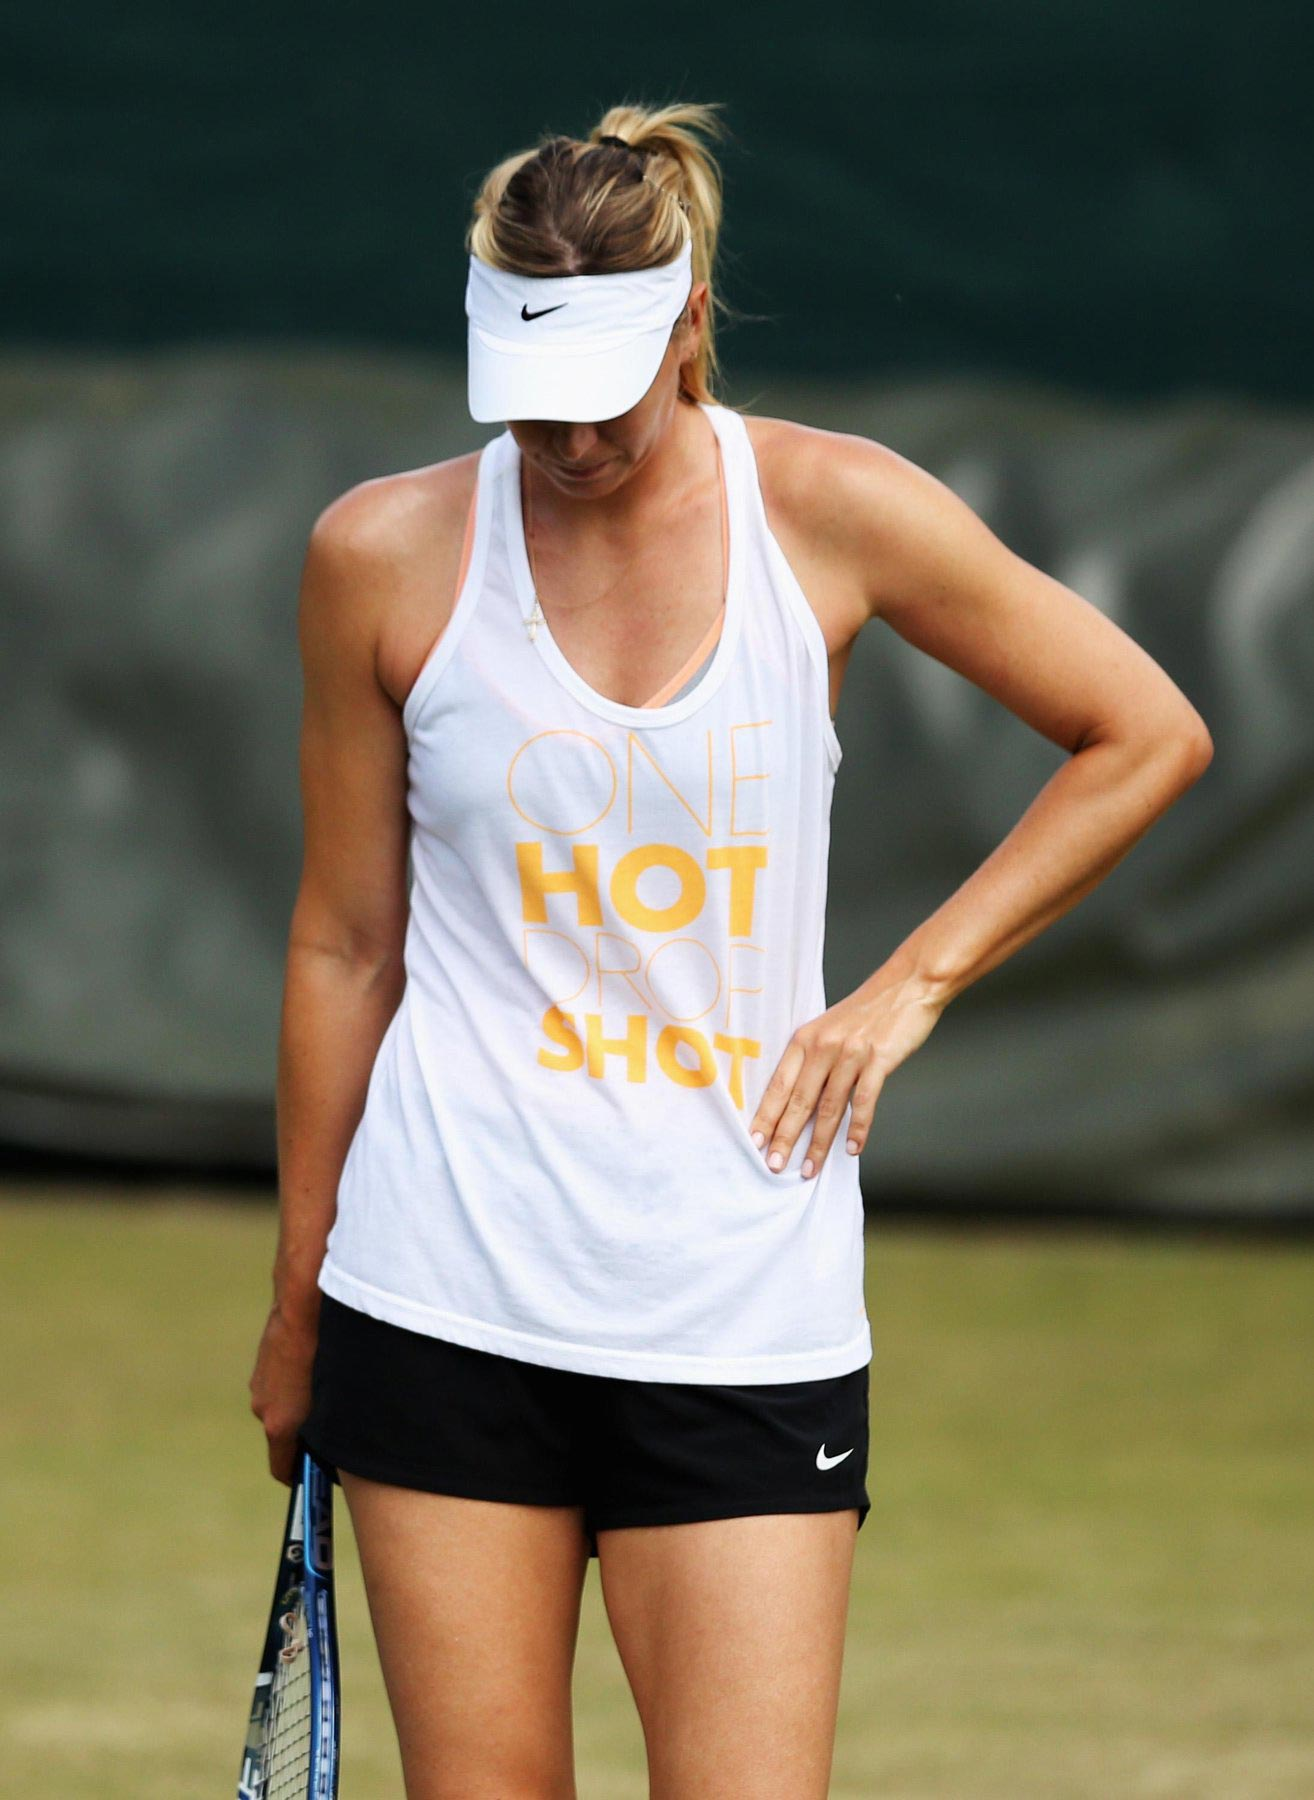 Maria Sharapova At Practice Session Before Wimbledon 2014